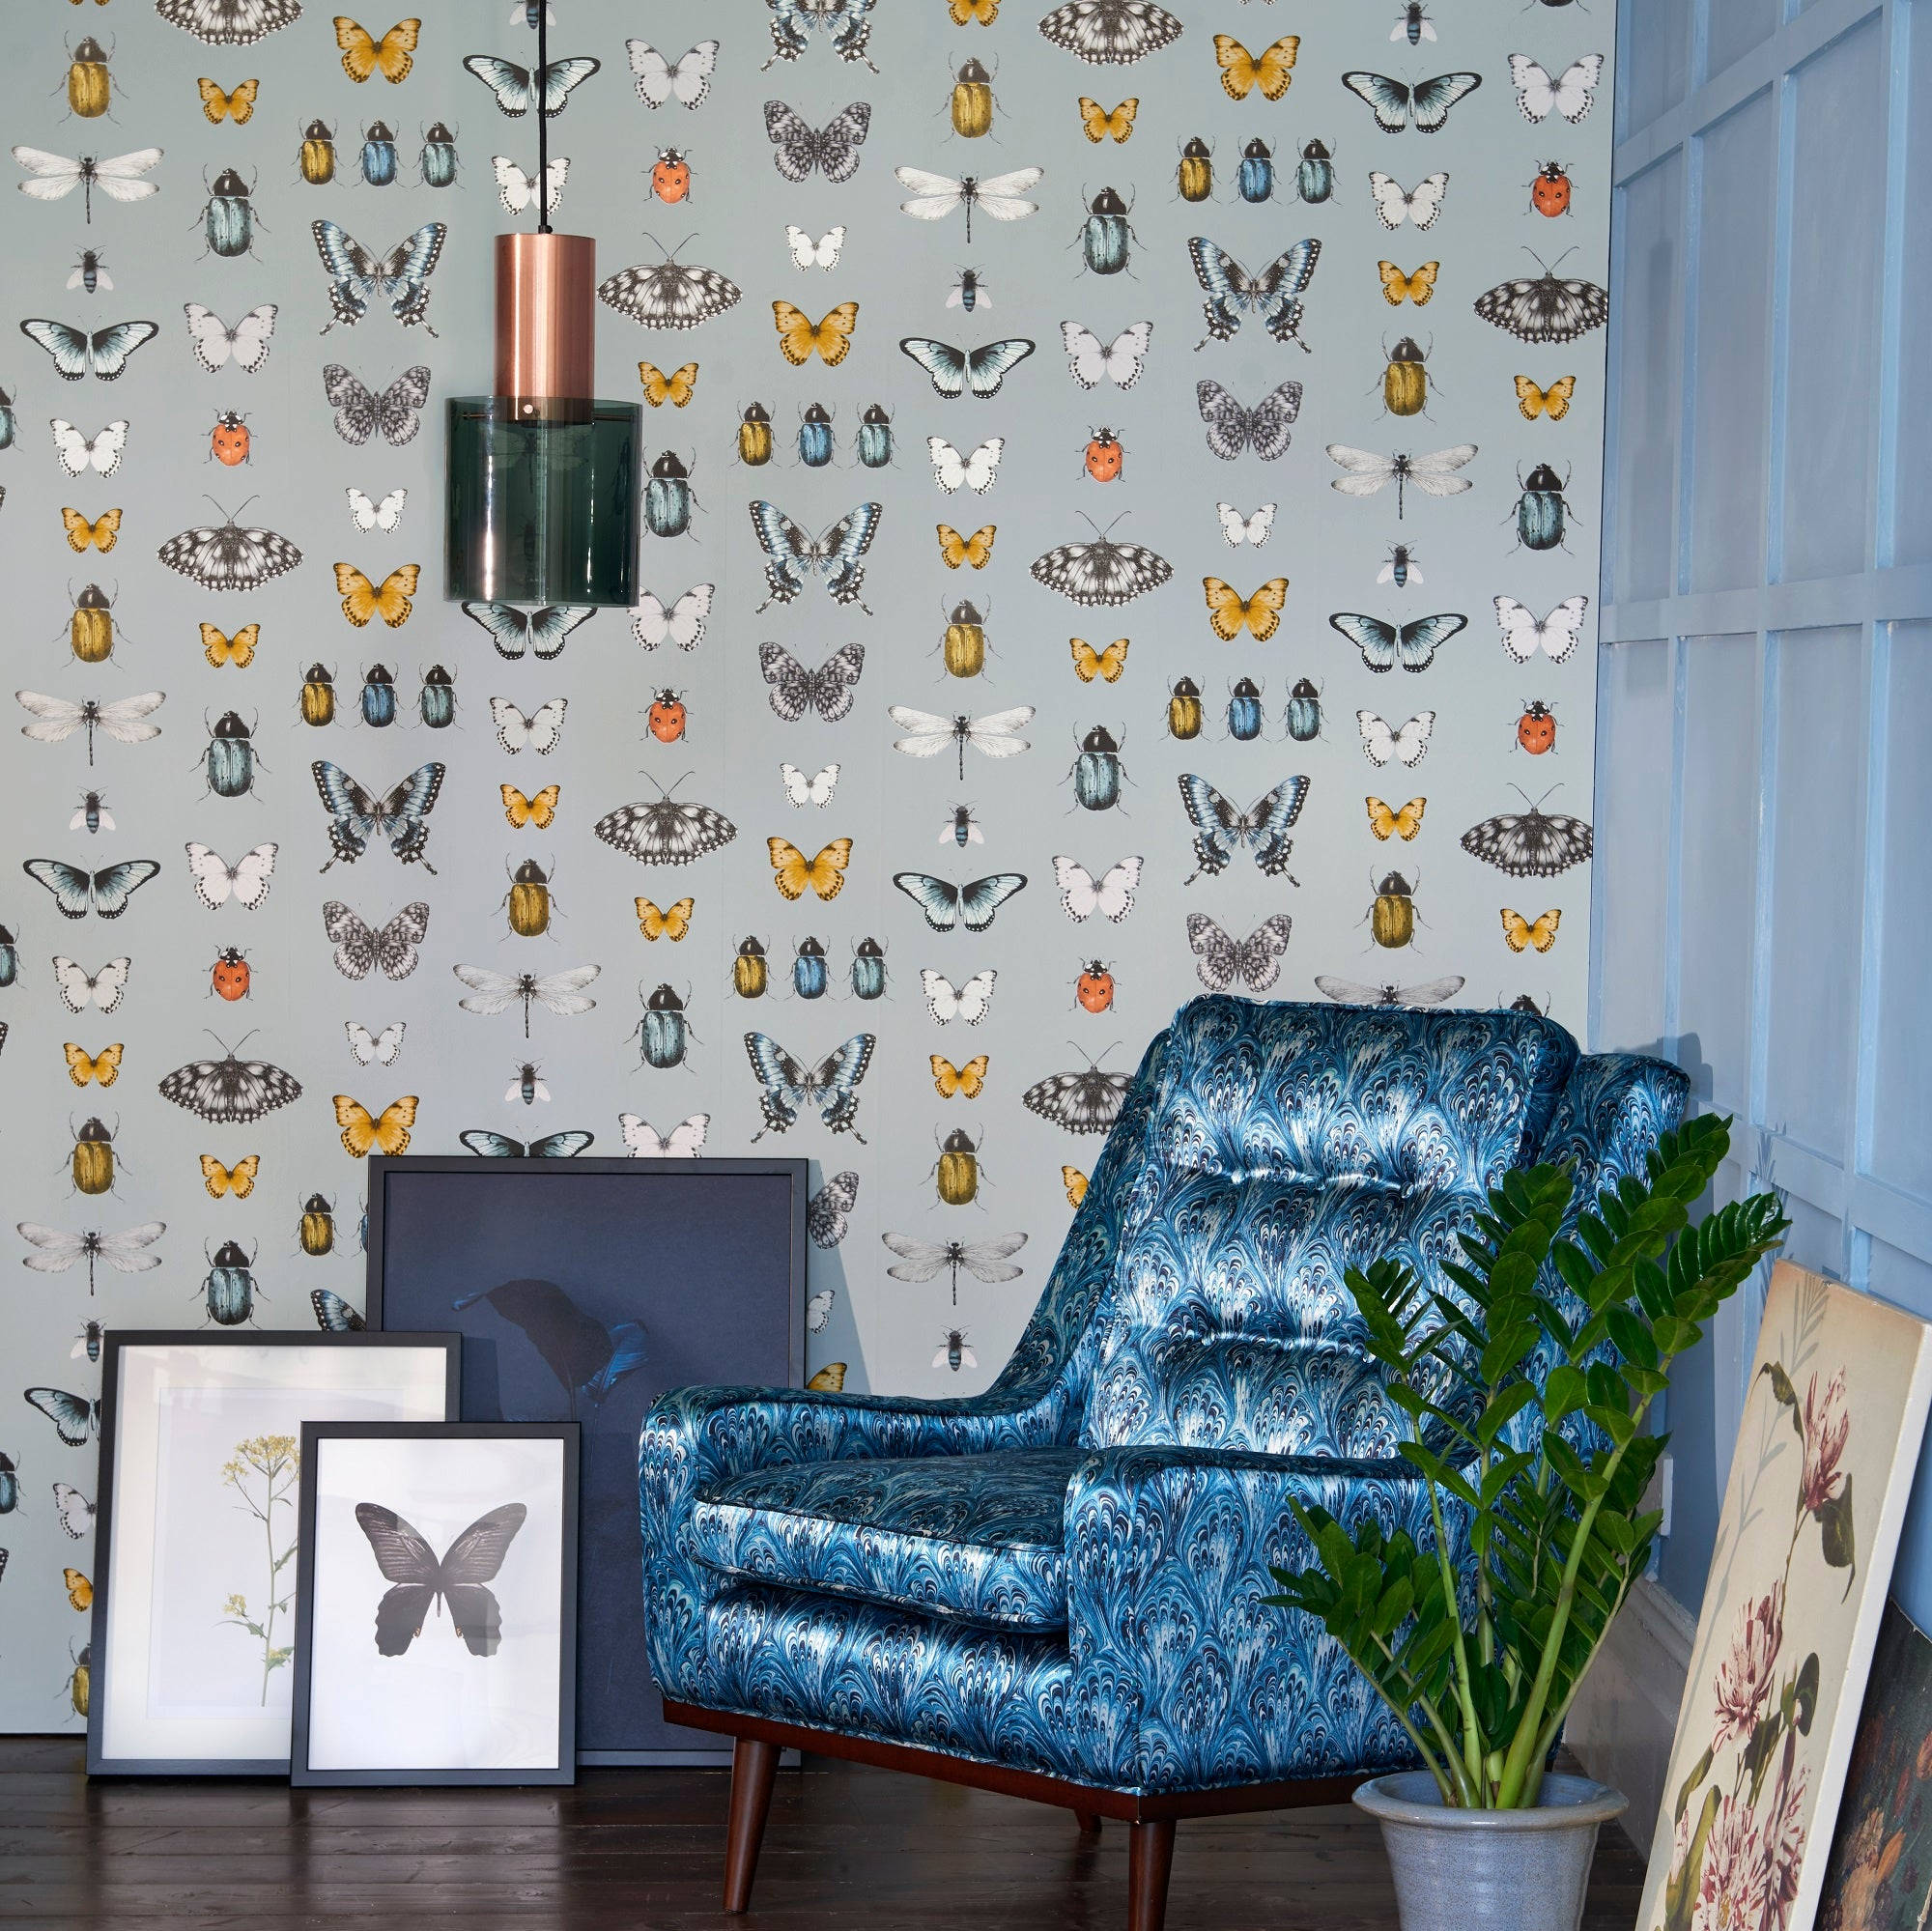 Papilio Traditional Insects & Butterflies  | Designer Motif Wallpaper in Teal & Gold/Silver